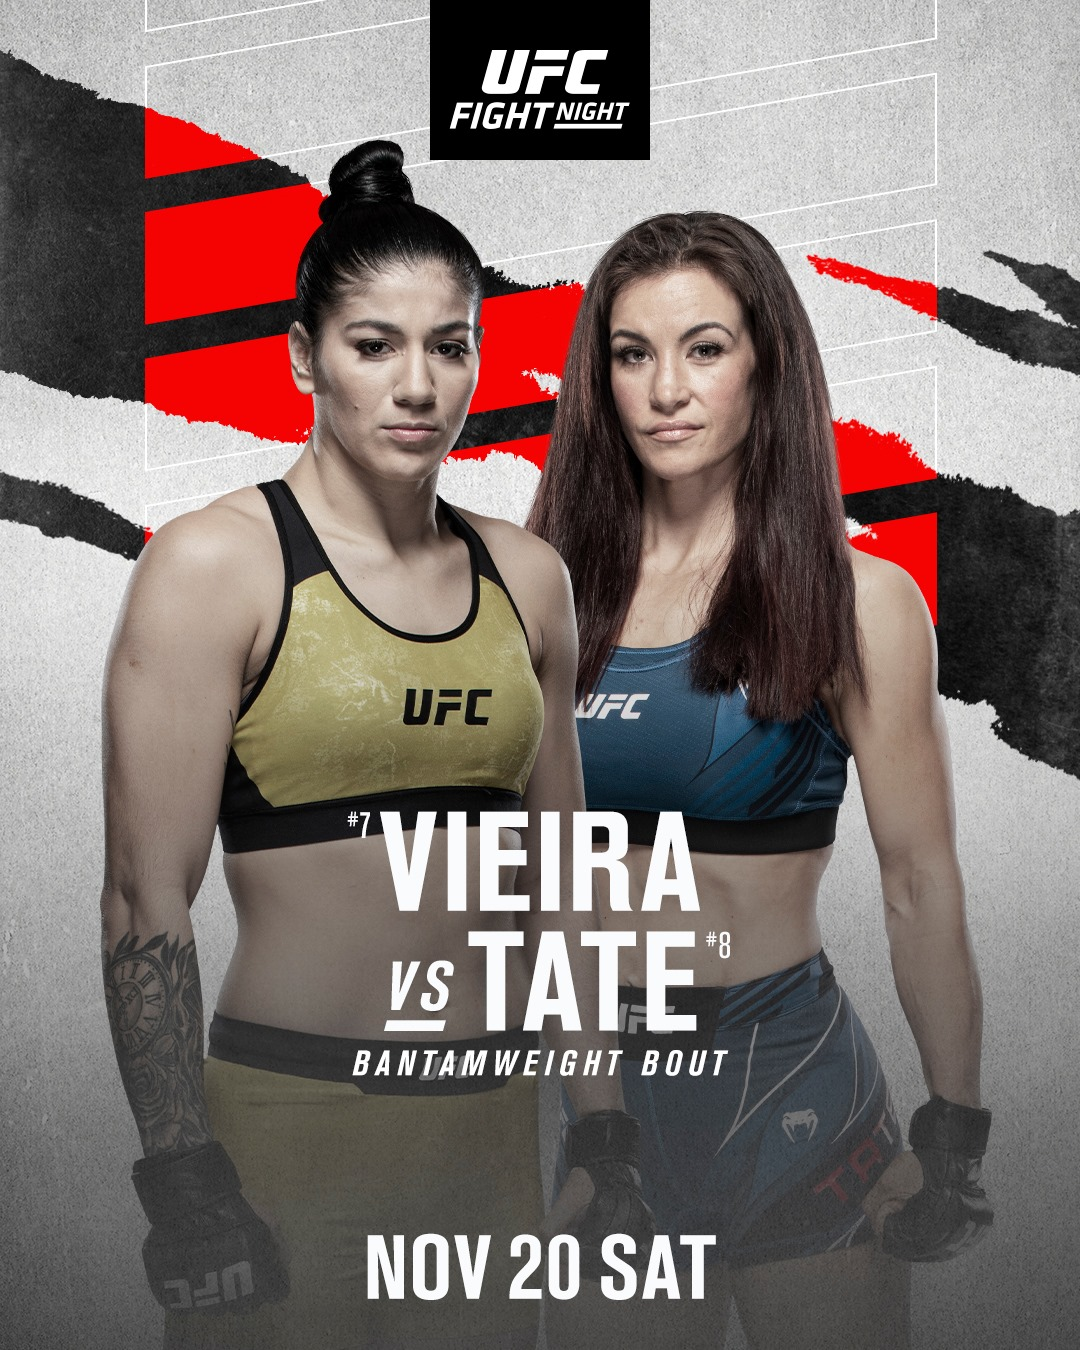 UFC Fight Night 200 Fight Card Poster